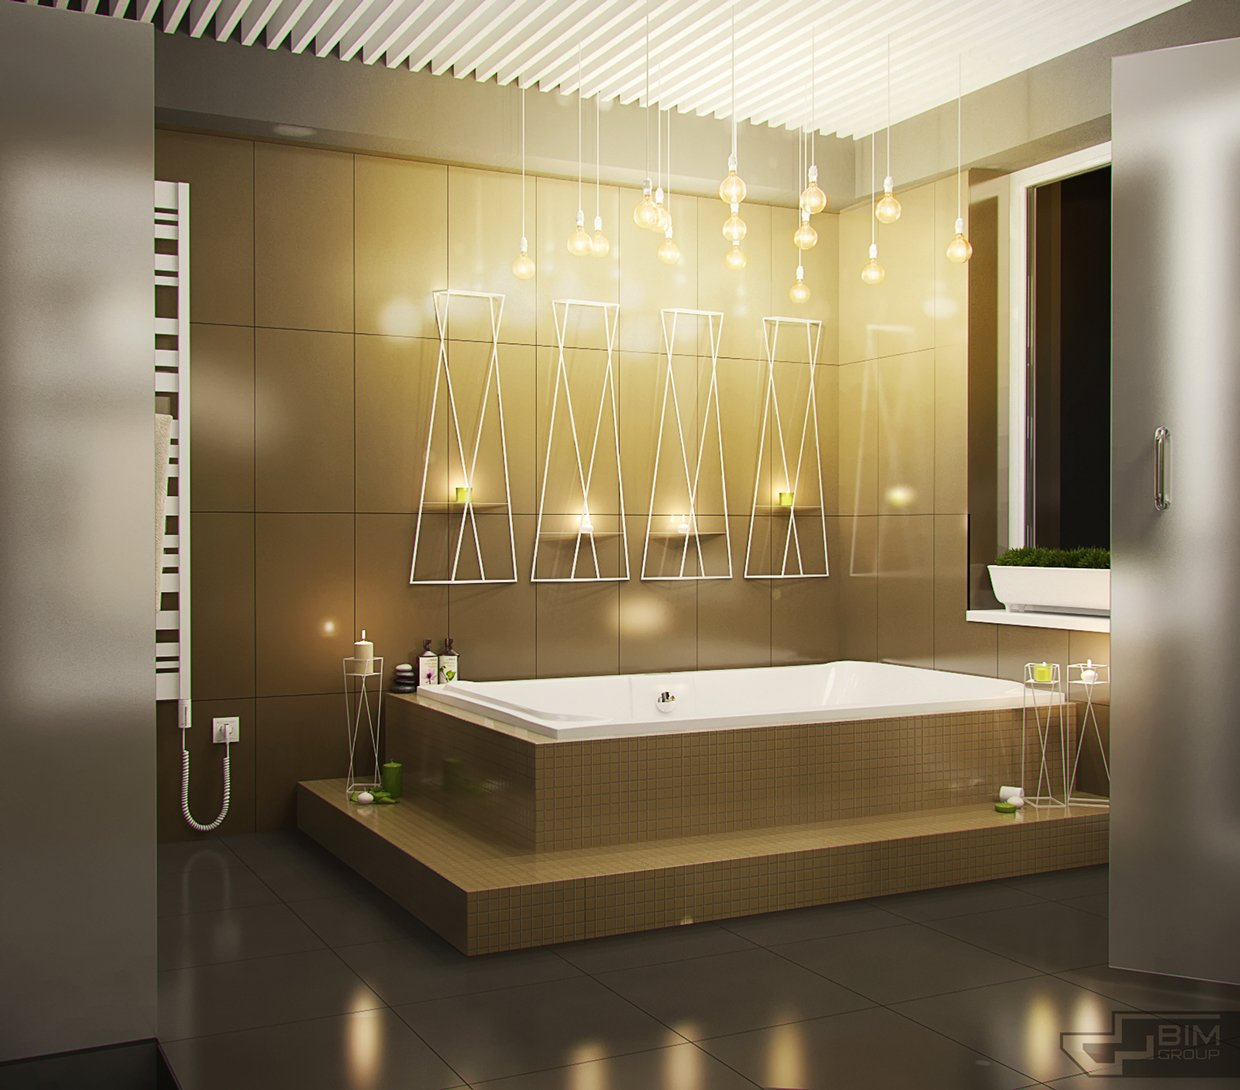 Decorating bathroom backsplash ideas showing a modern and for Bathroom lighting designs